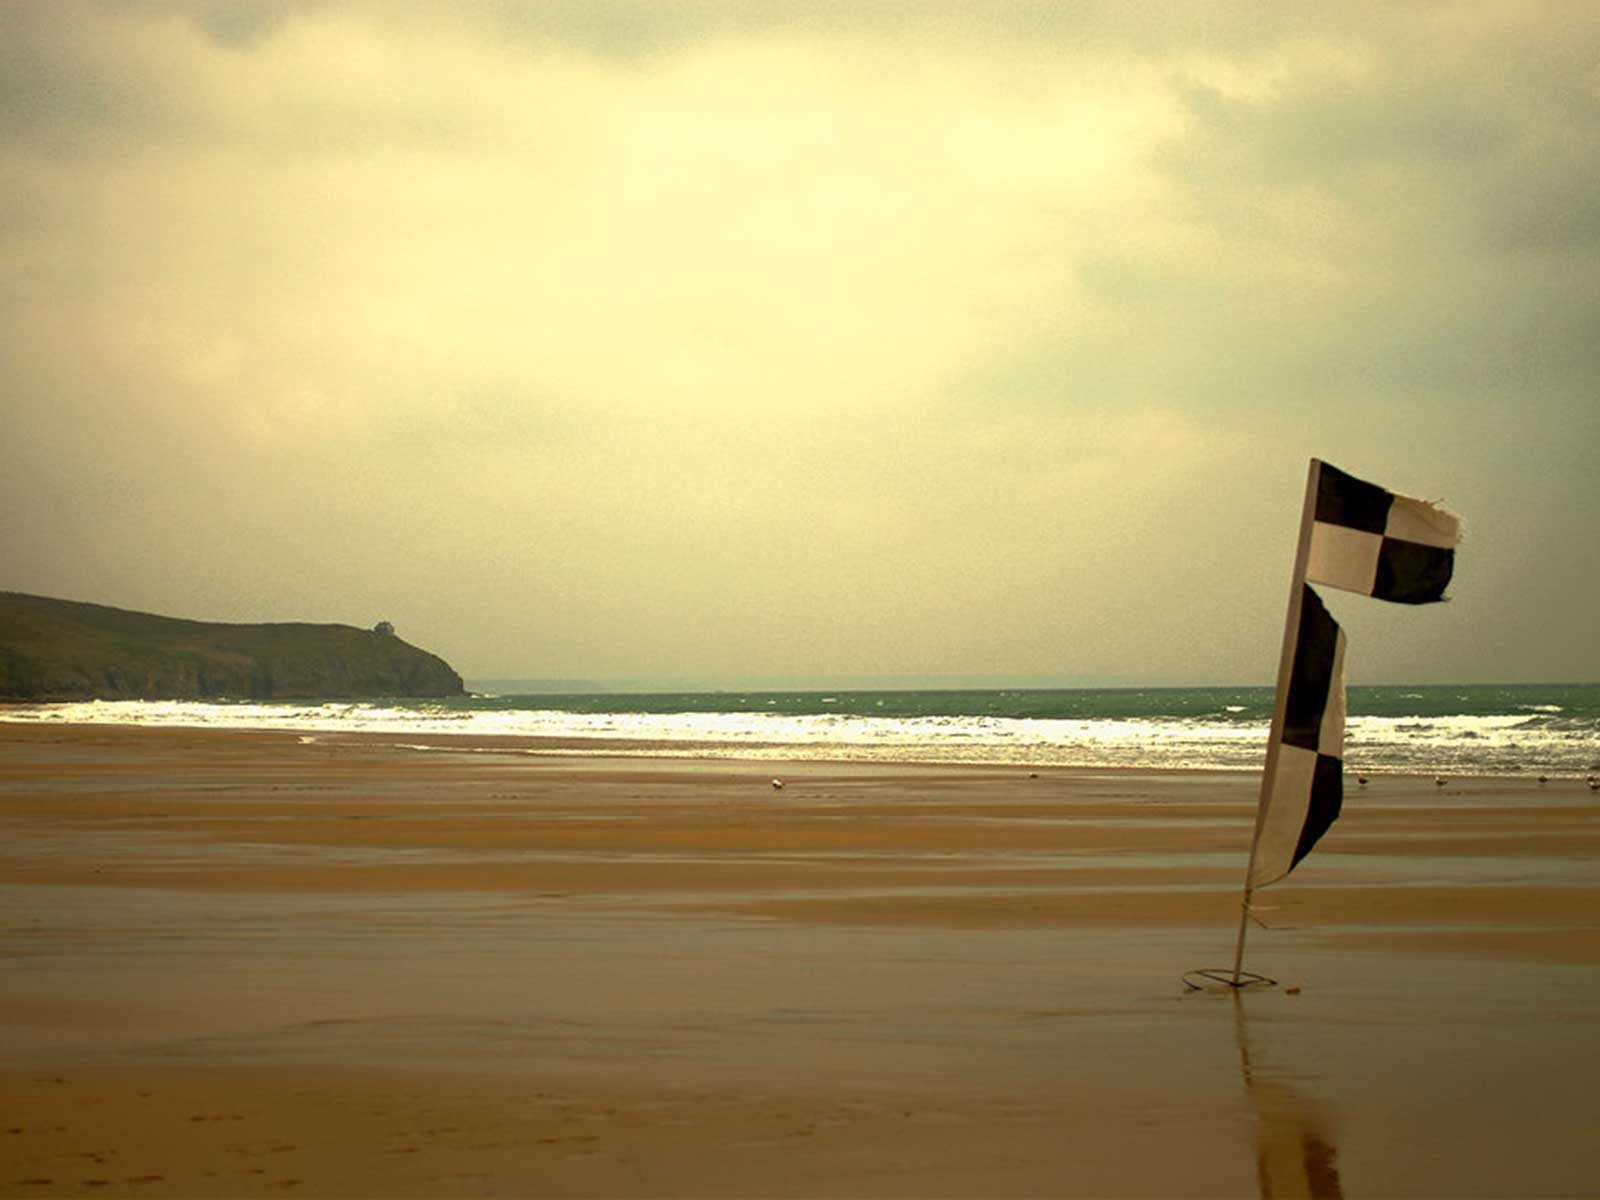 Beach at low tide with flags, Praa Sands, Cornwall